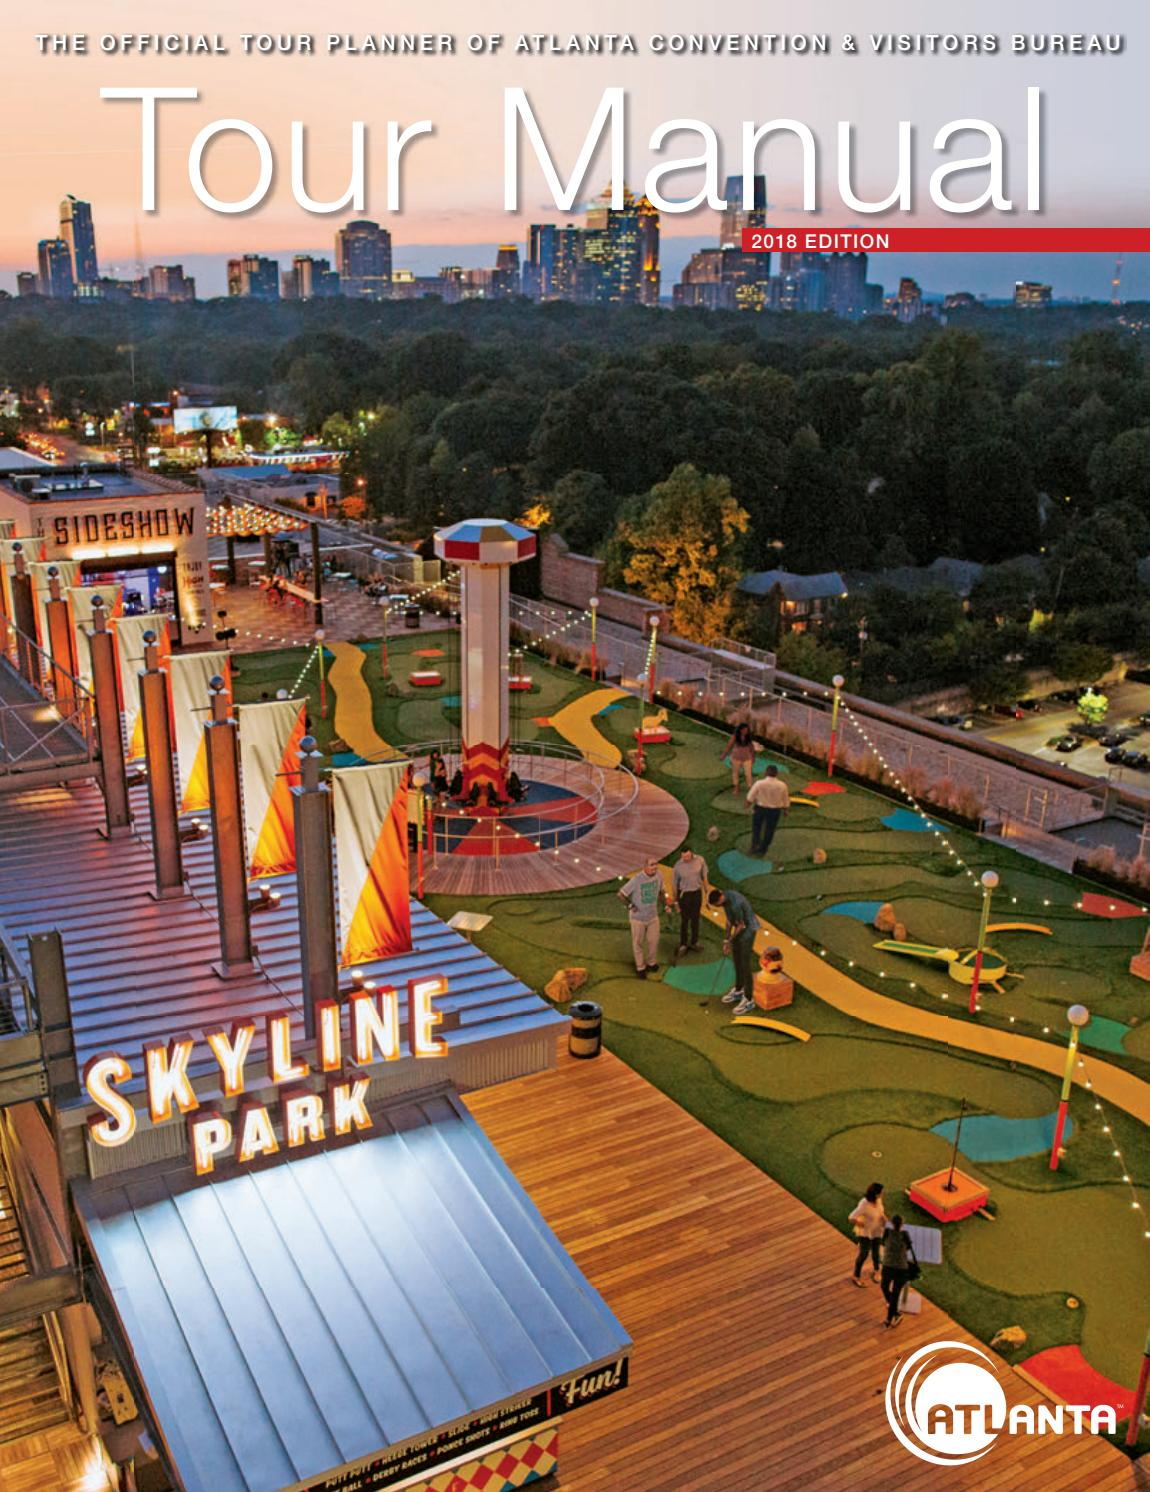 Atlanta | Tour Manual 2018 by Atlanta CVB - issuu